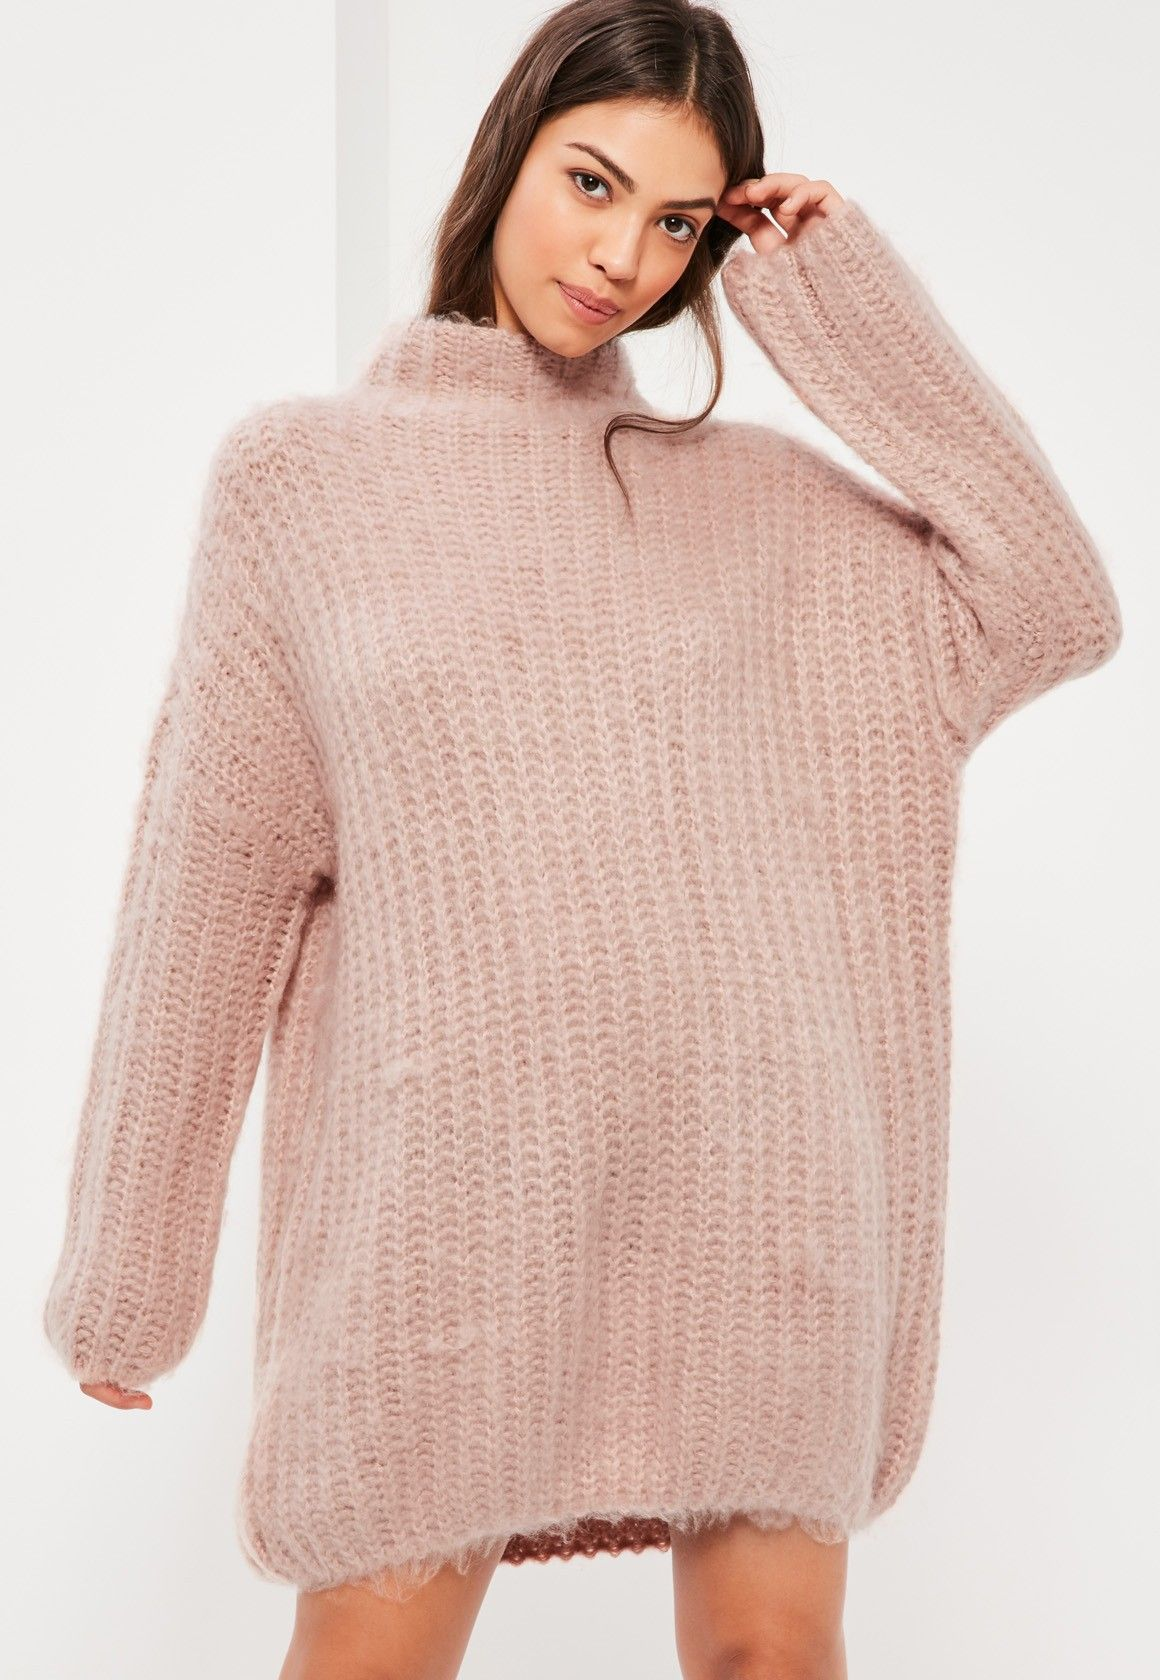 Missguided - Robe-pull courte oversize rose Pull Oversize Rose 6c292a4b8